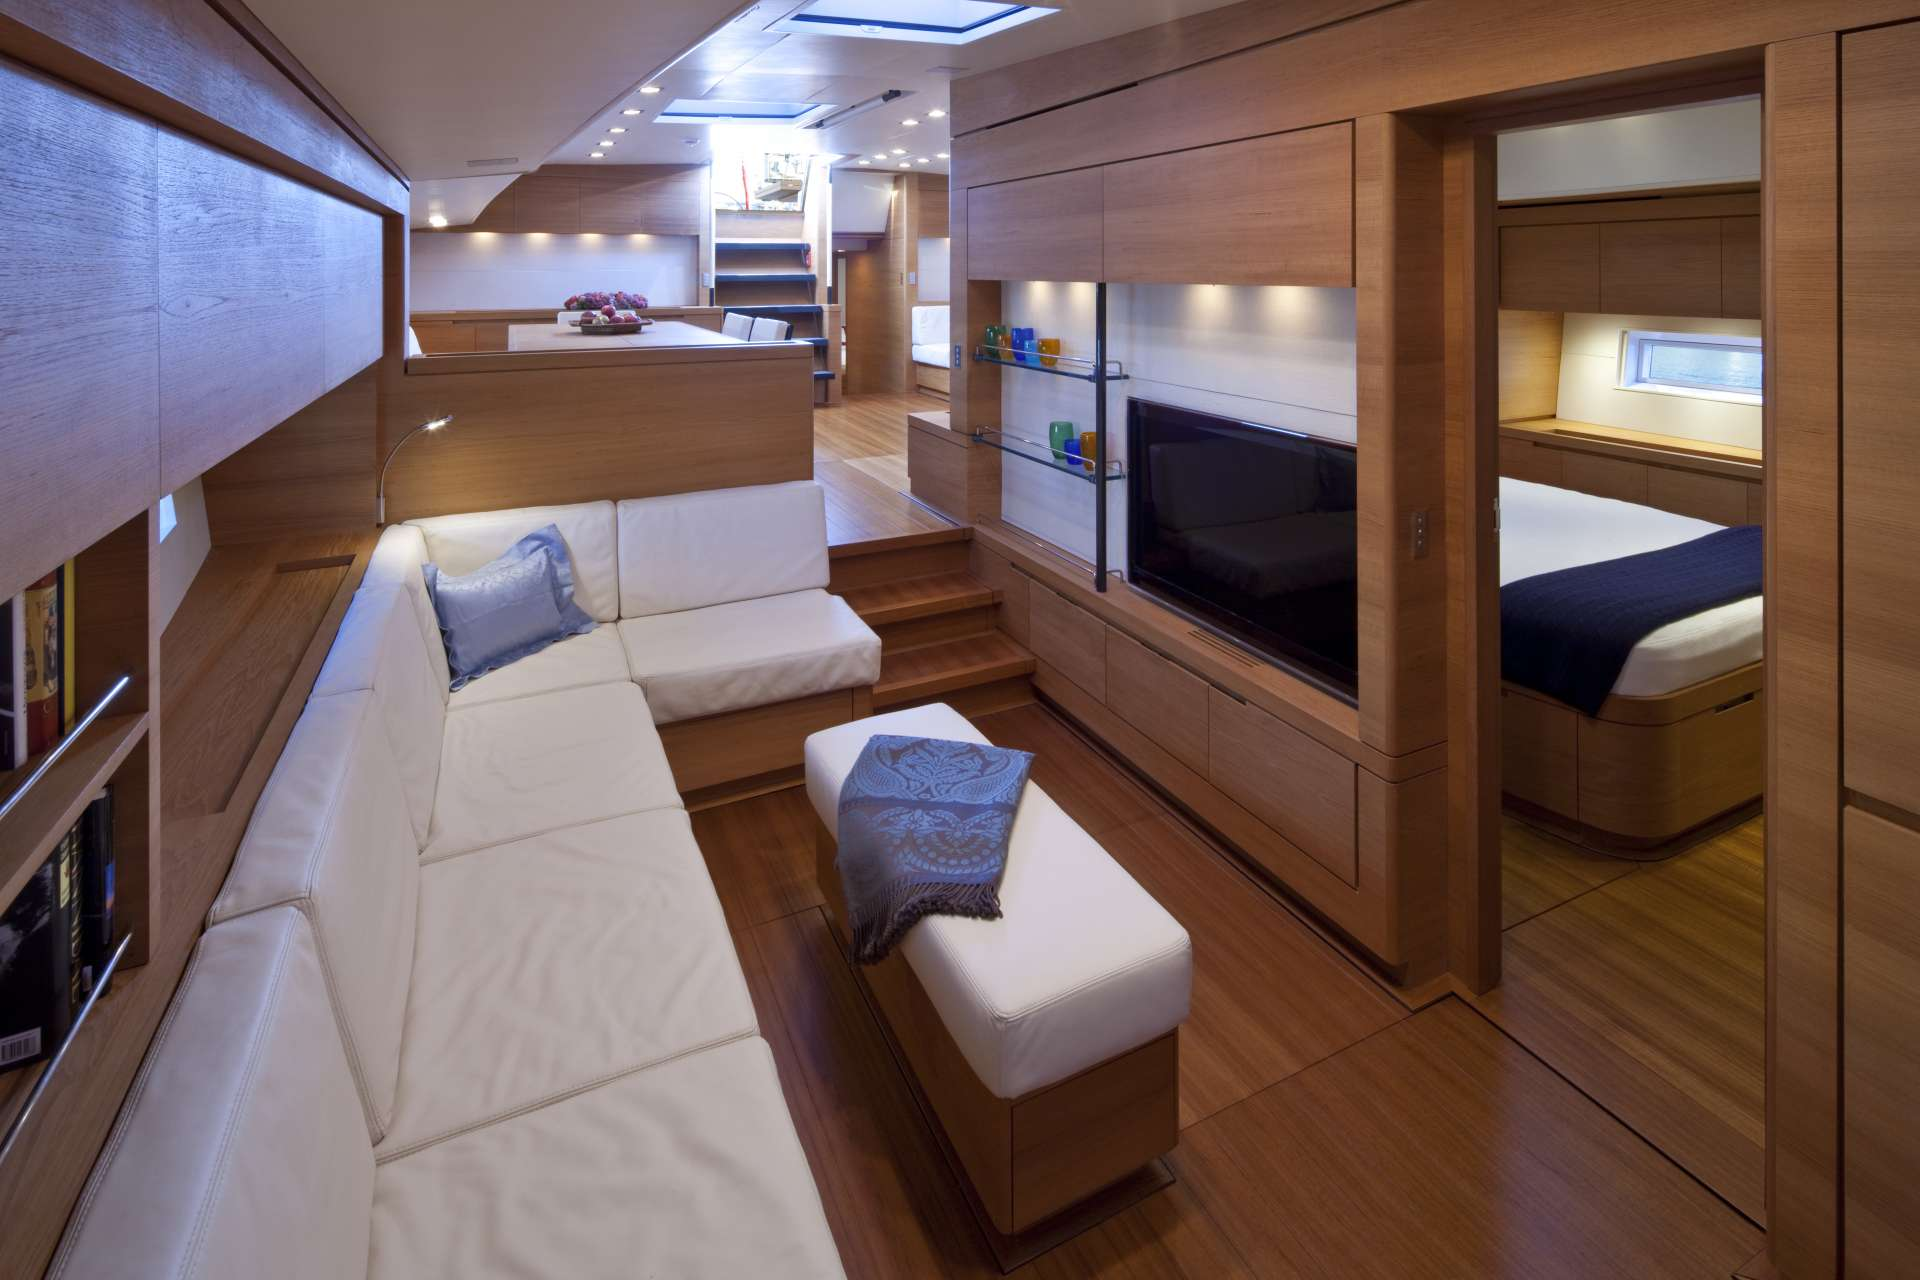 Sail Yacht 'Sail', 8 PAX, 5 Crew, 110.00 Ft, 33.00 Meters, Built 2010, Southern Wind, Refit Year